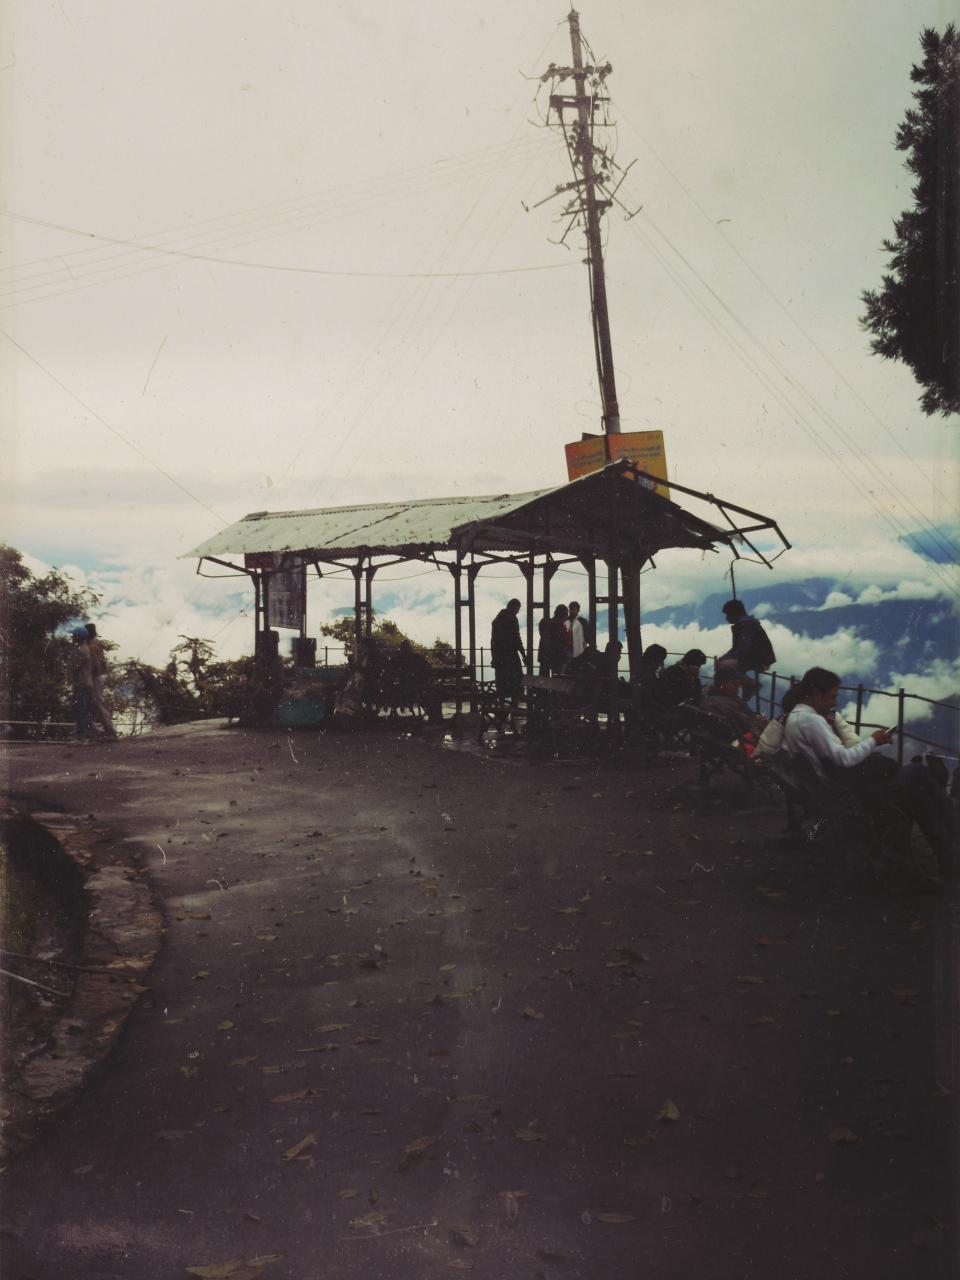 tables sky road powerlines people pavement mountains hut clouds chairs